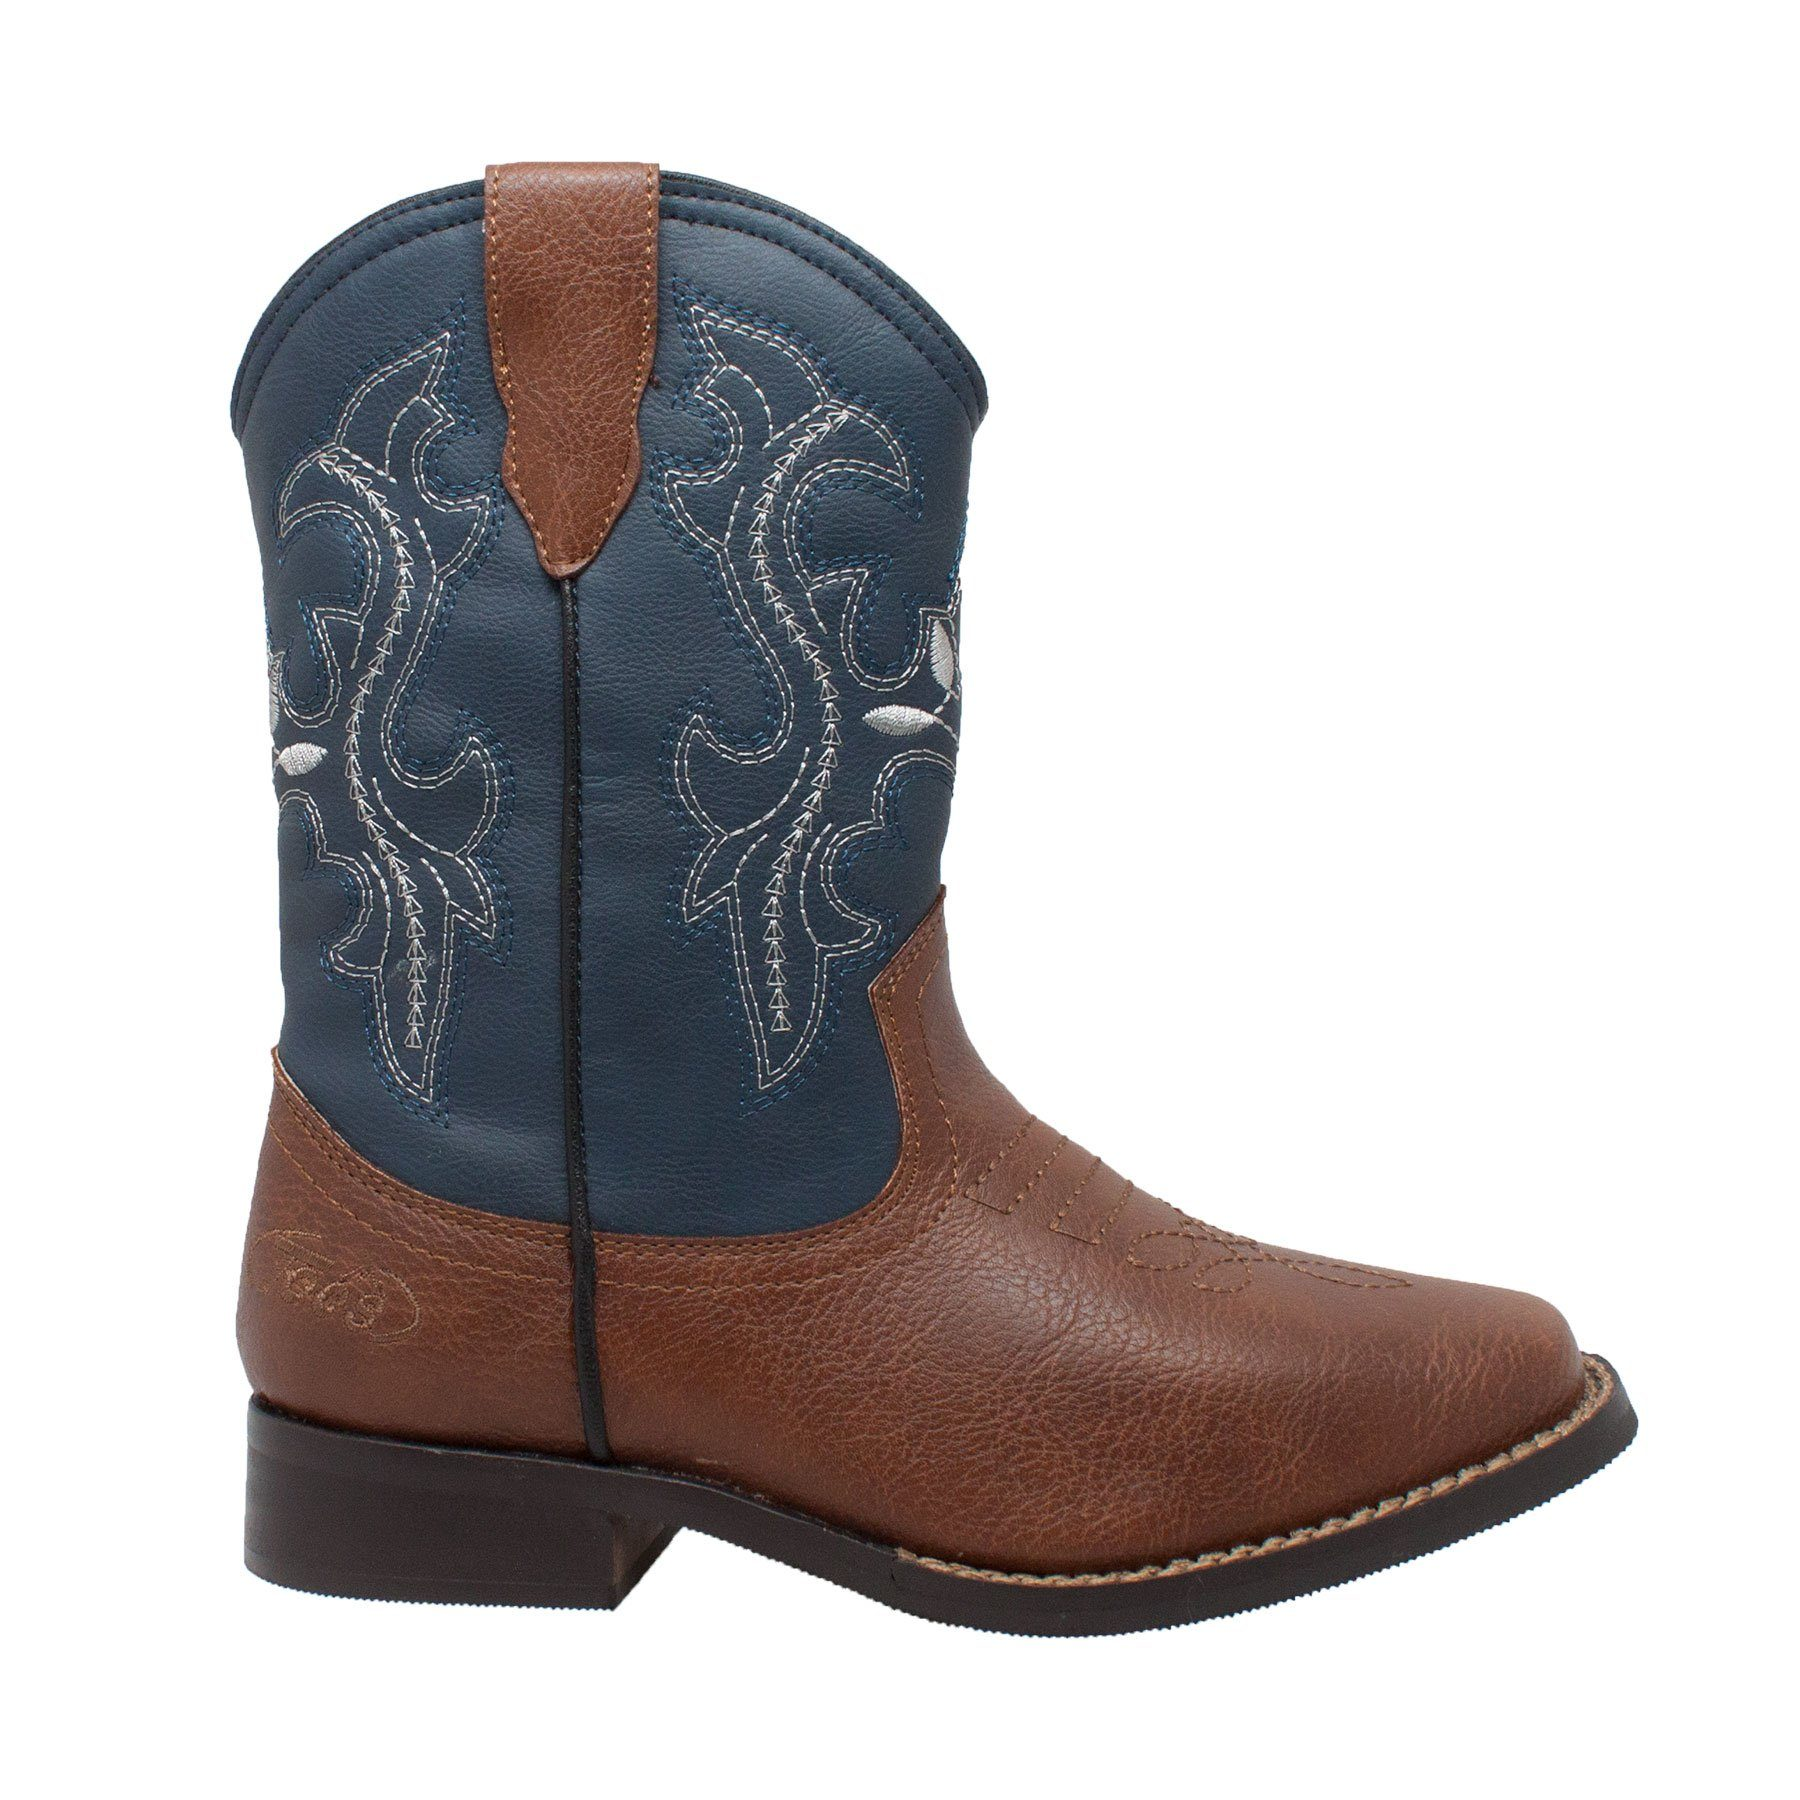 "Children's Boots - Children's 8"" Navy Blue/Brown Top Western Pull On Boots"